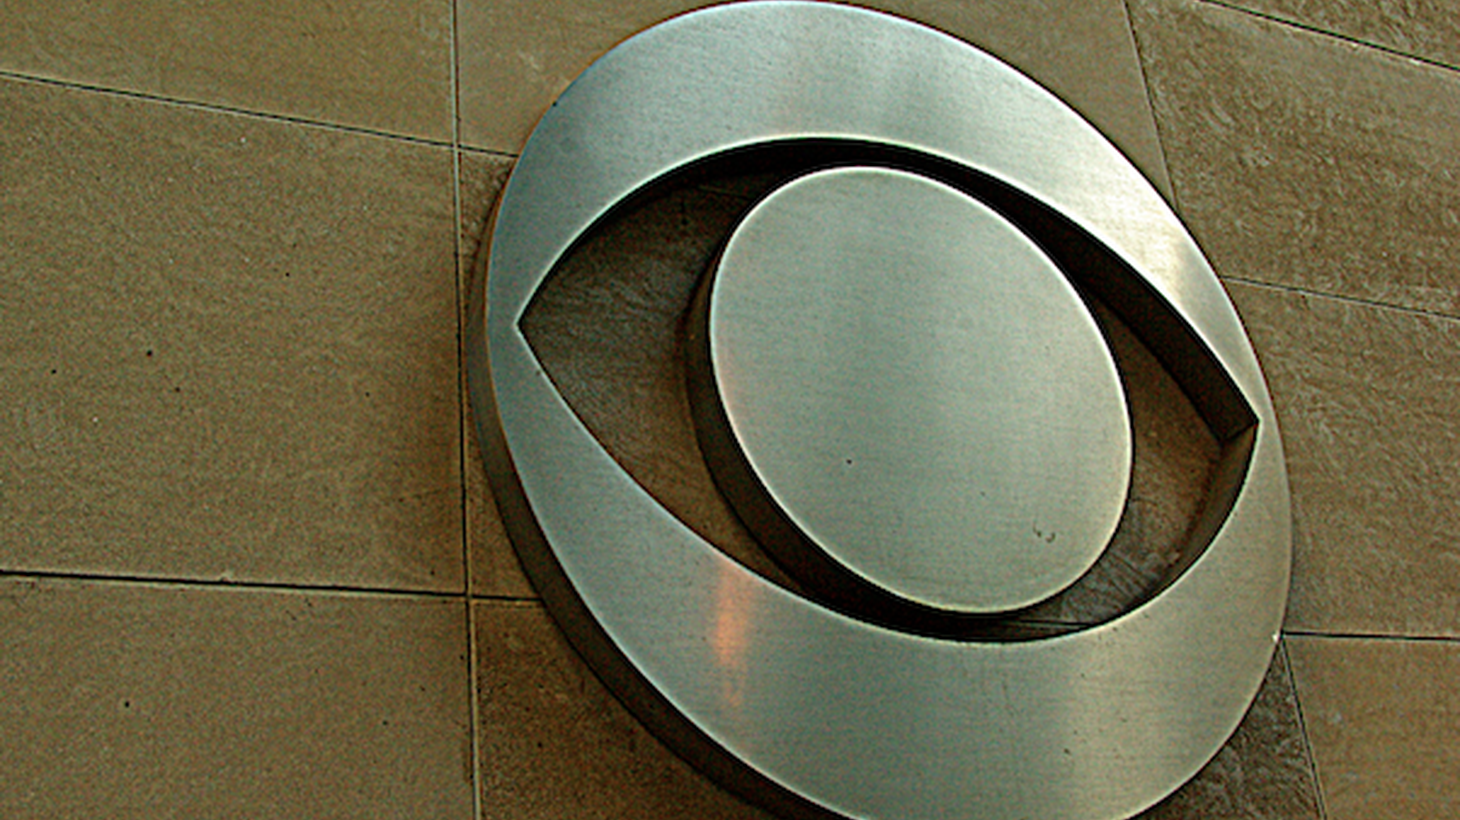 Les Moonves ran CBS for 15 years. Then the New Yorker published a story that included detailed accounts of alleged sexual assault. On Sunday, CBS announced Moonves left the company and would not receive any of his exit compensation.